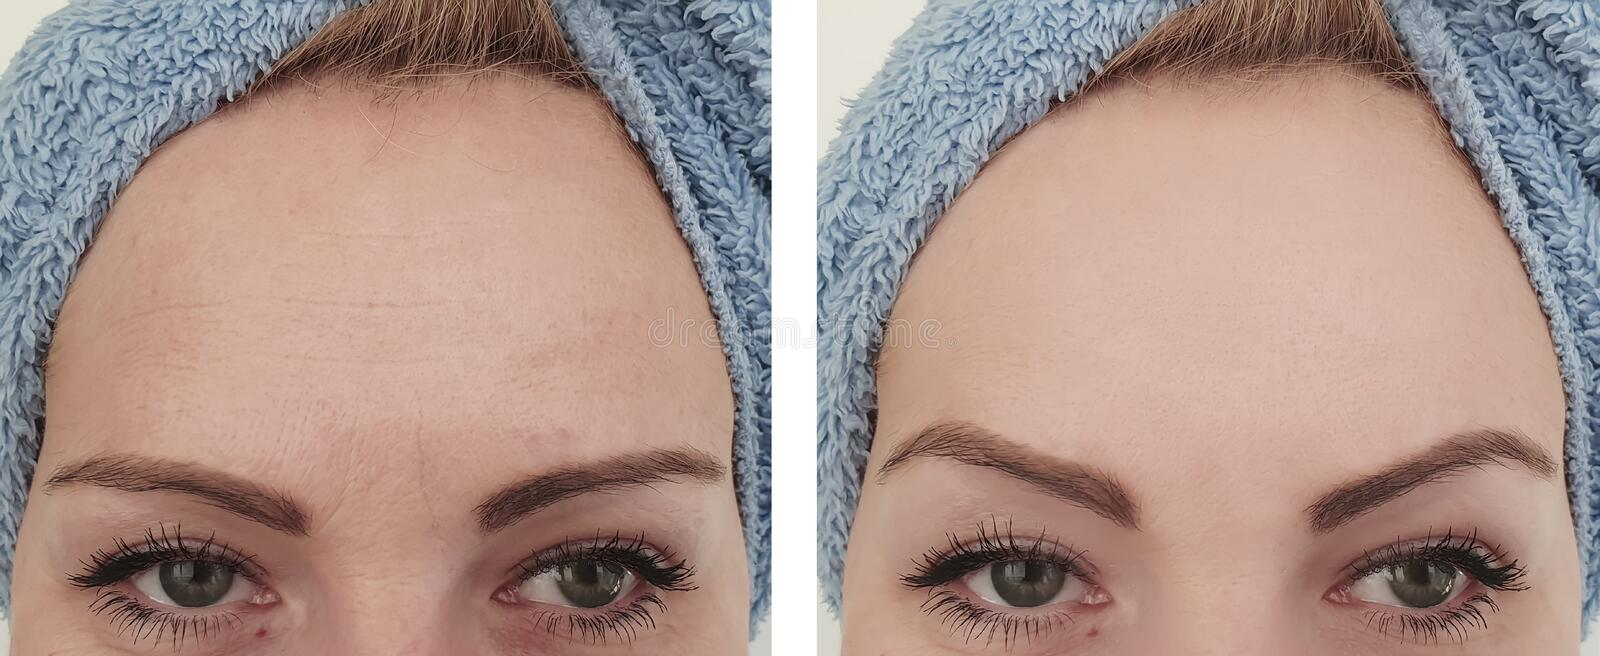 Woman wrinkles before and after removal procedures. Woman wrinkles before  after removal procedures stock photo